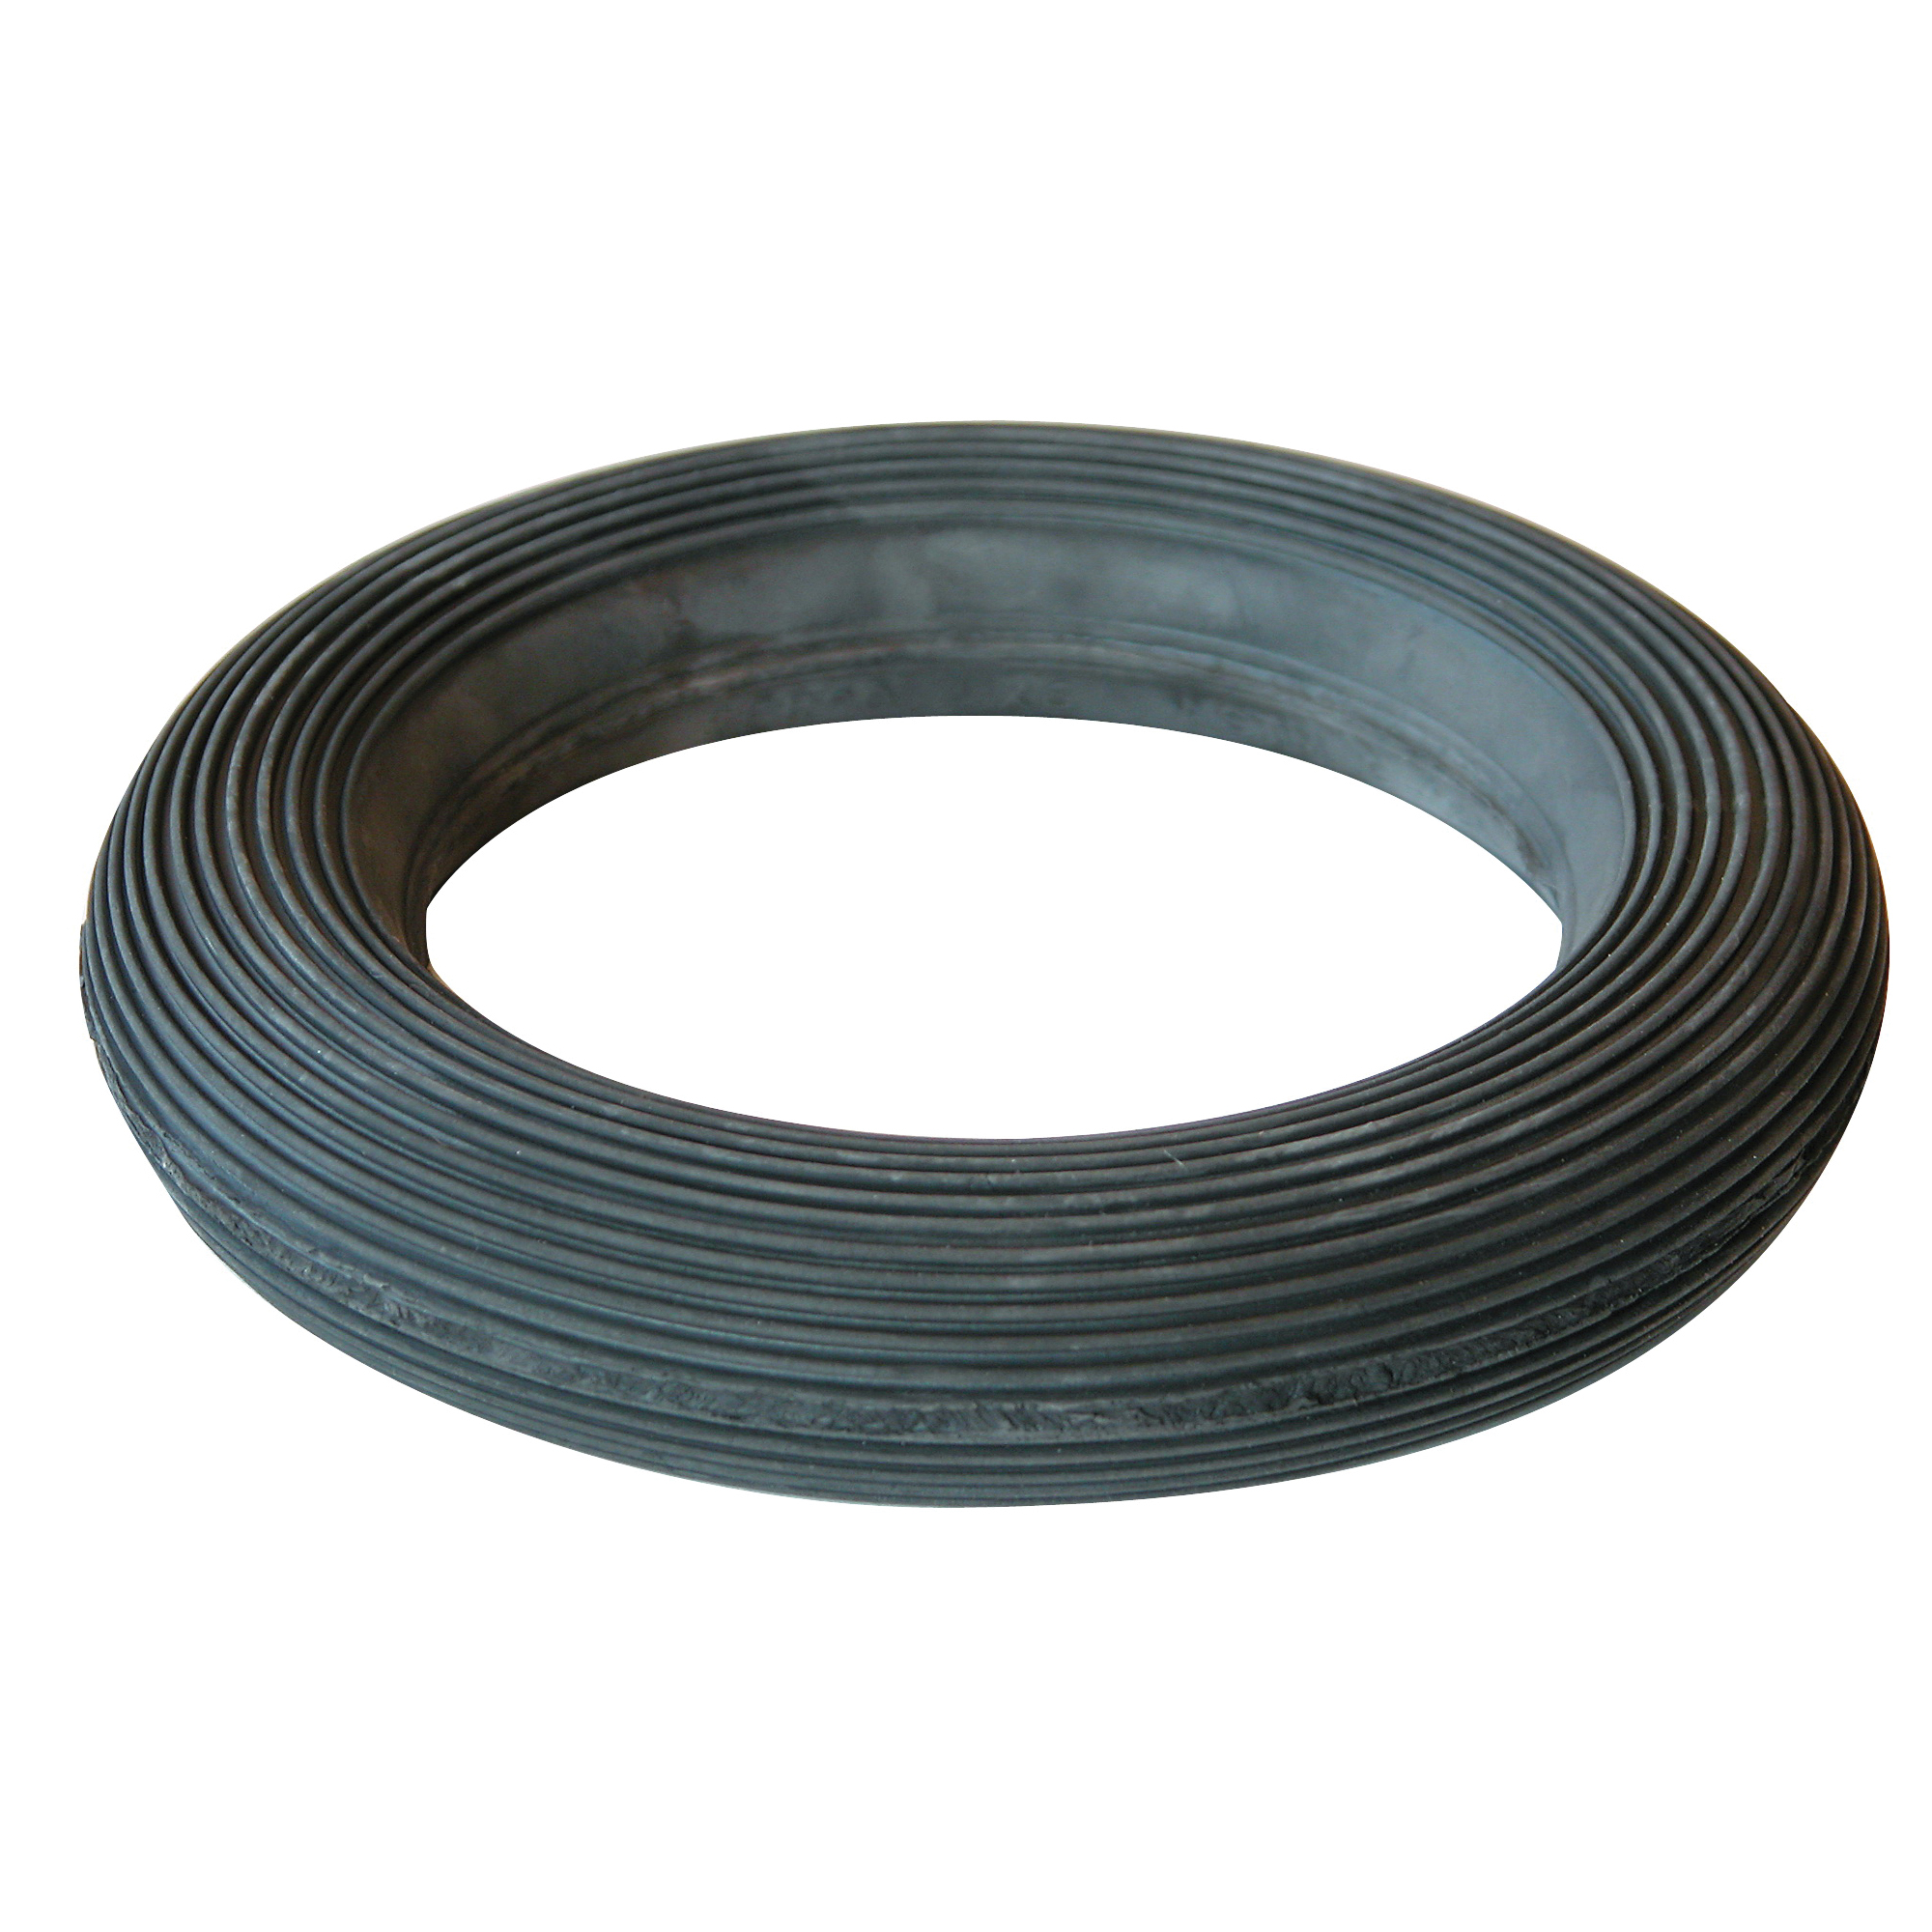 Picture of FERNCO BR-64 O-Ring, Rolling Style, Rubber